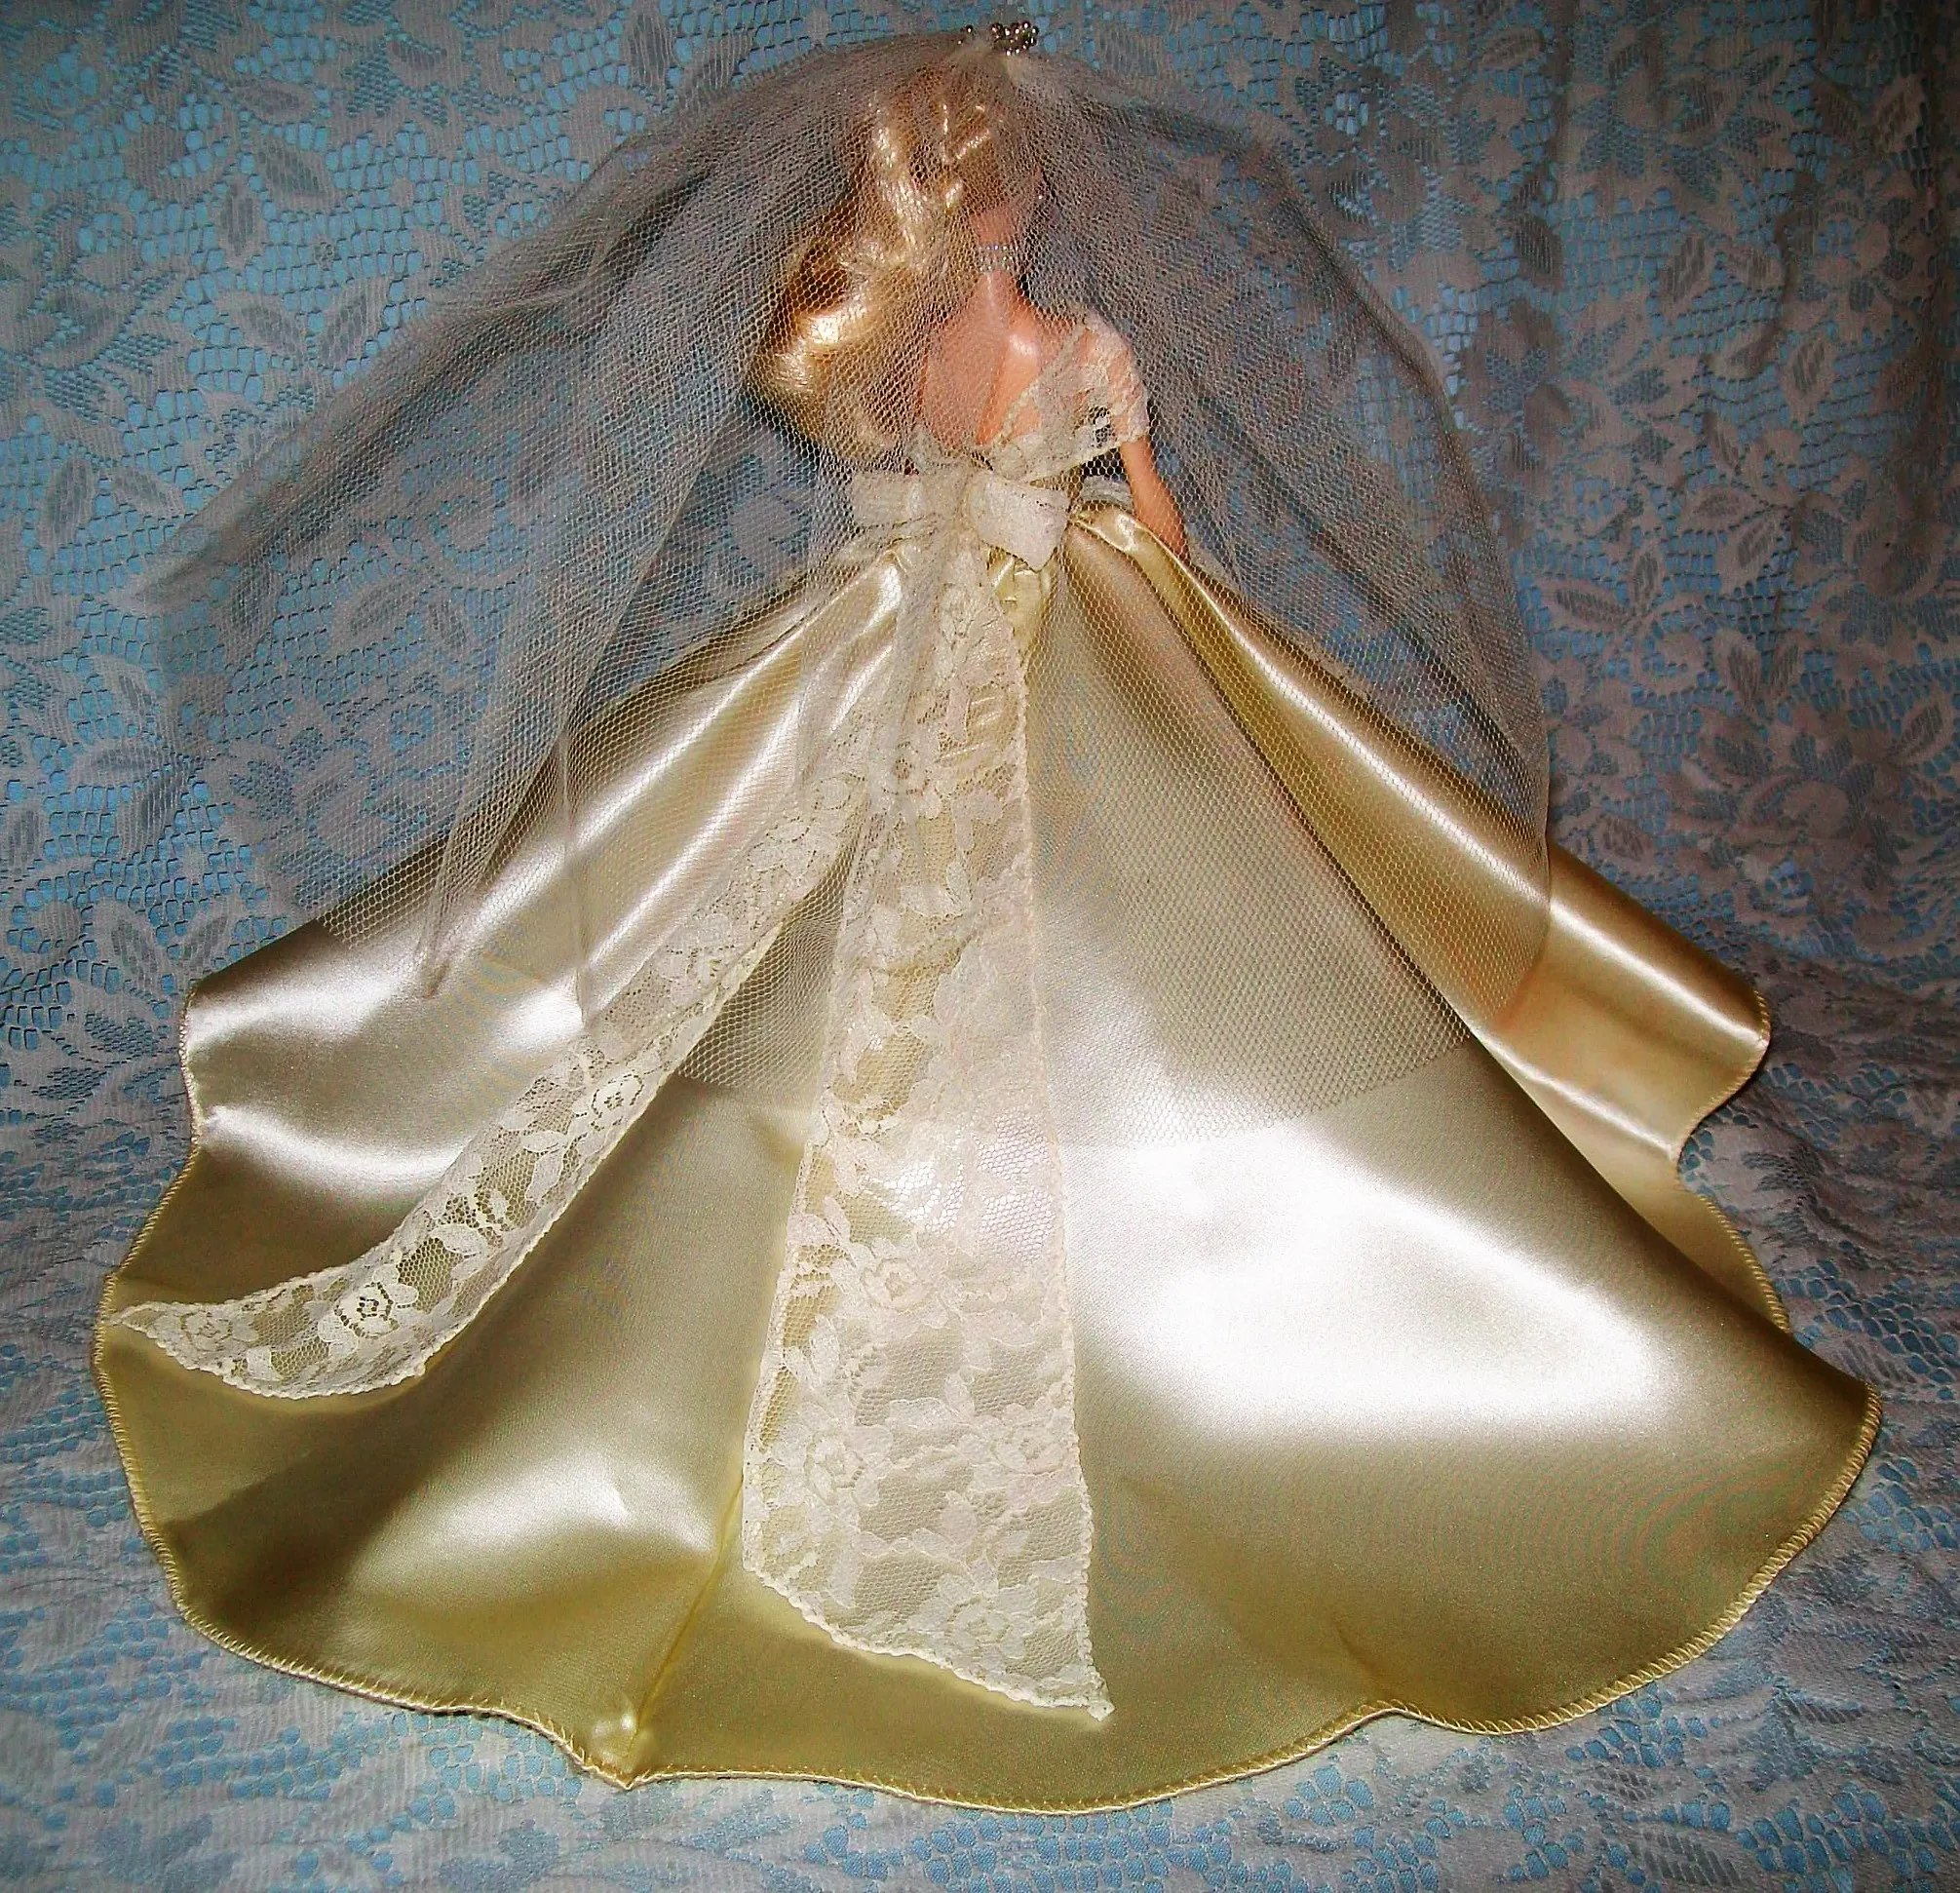 Vintage Wedding Dresses Chicago: Halina's Doll Fashions Of Chicago Barbie Wedding Gown And